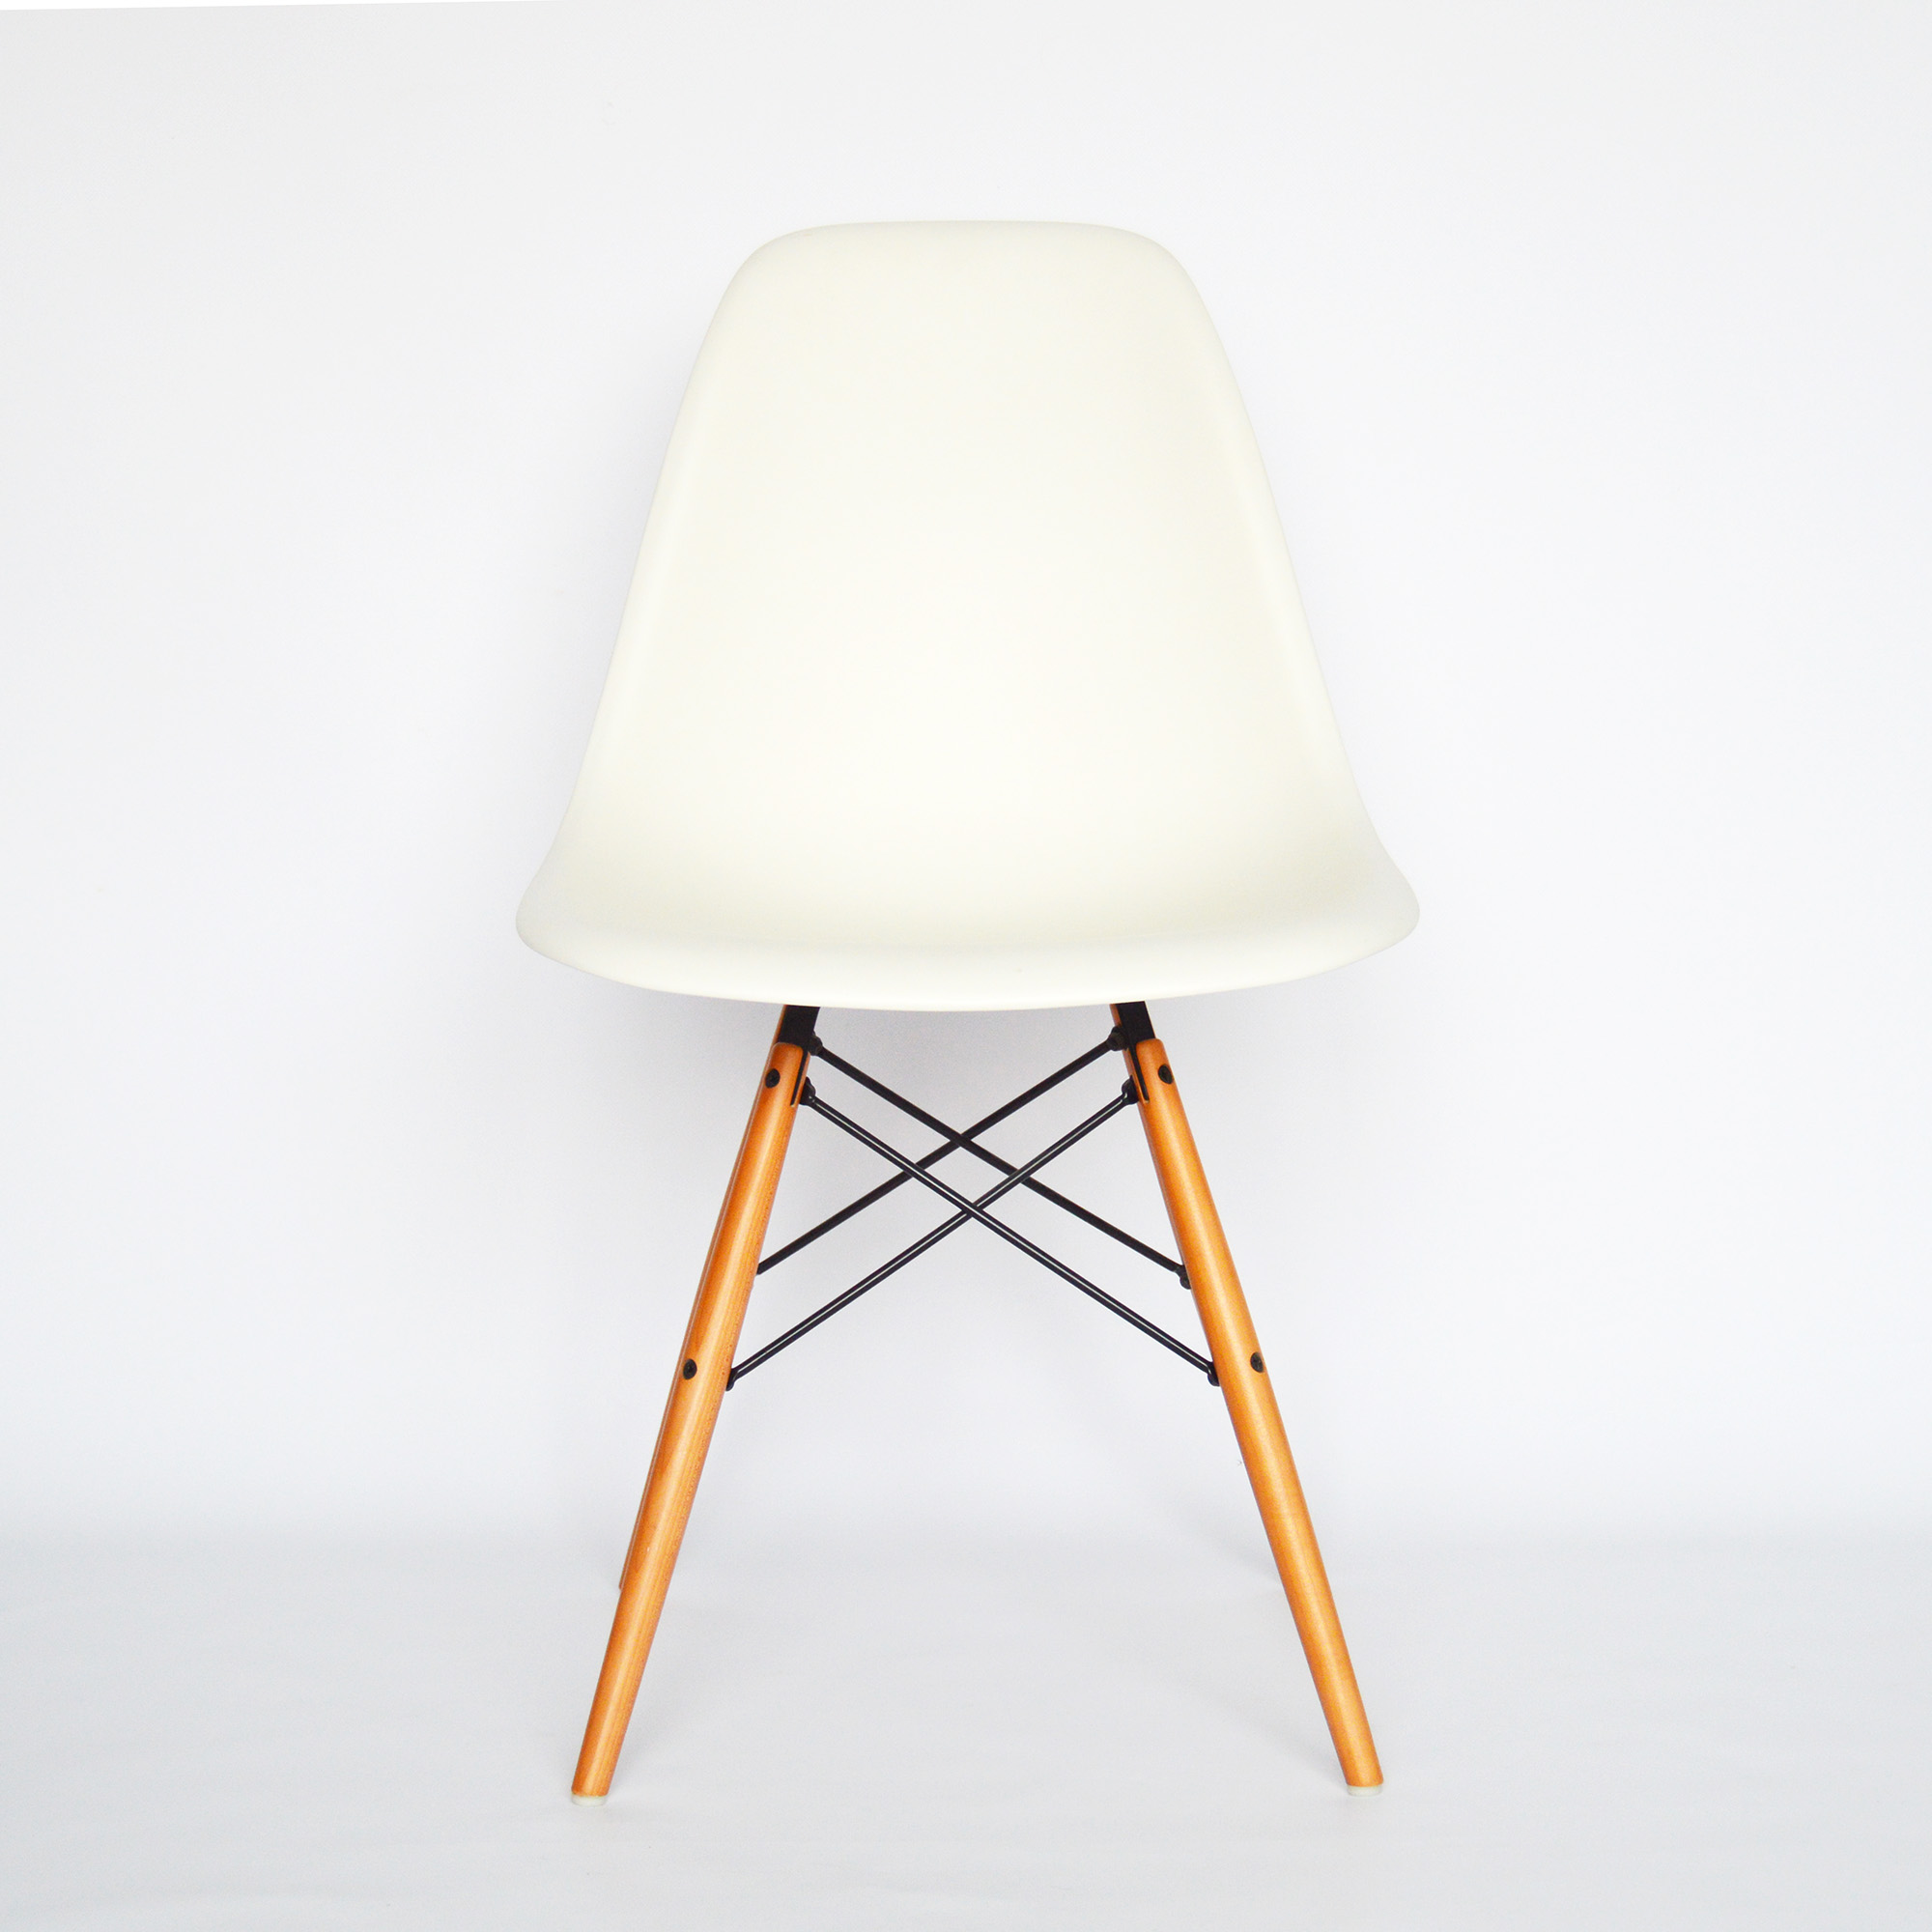 Gut Vitra Eames Plastic Side Chair ...